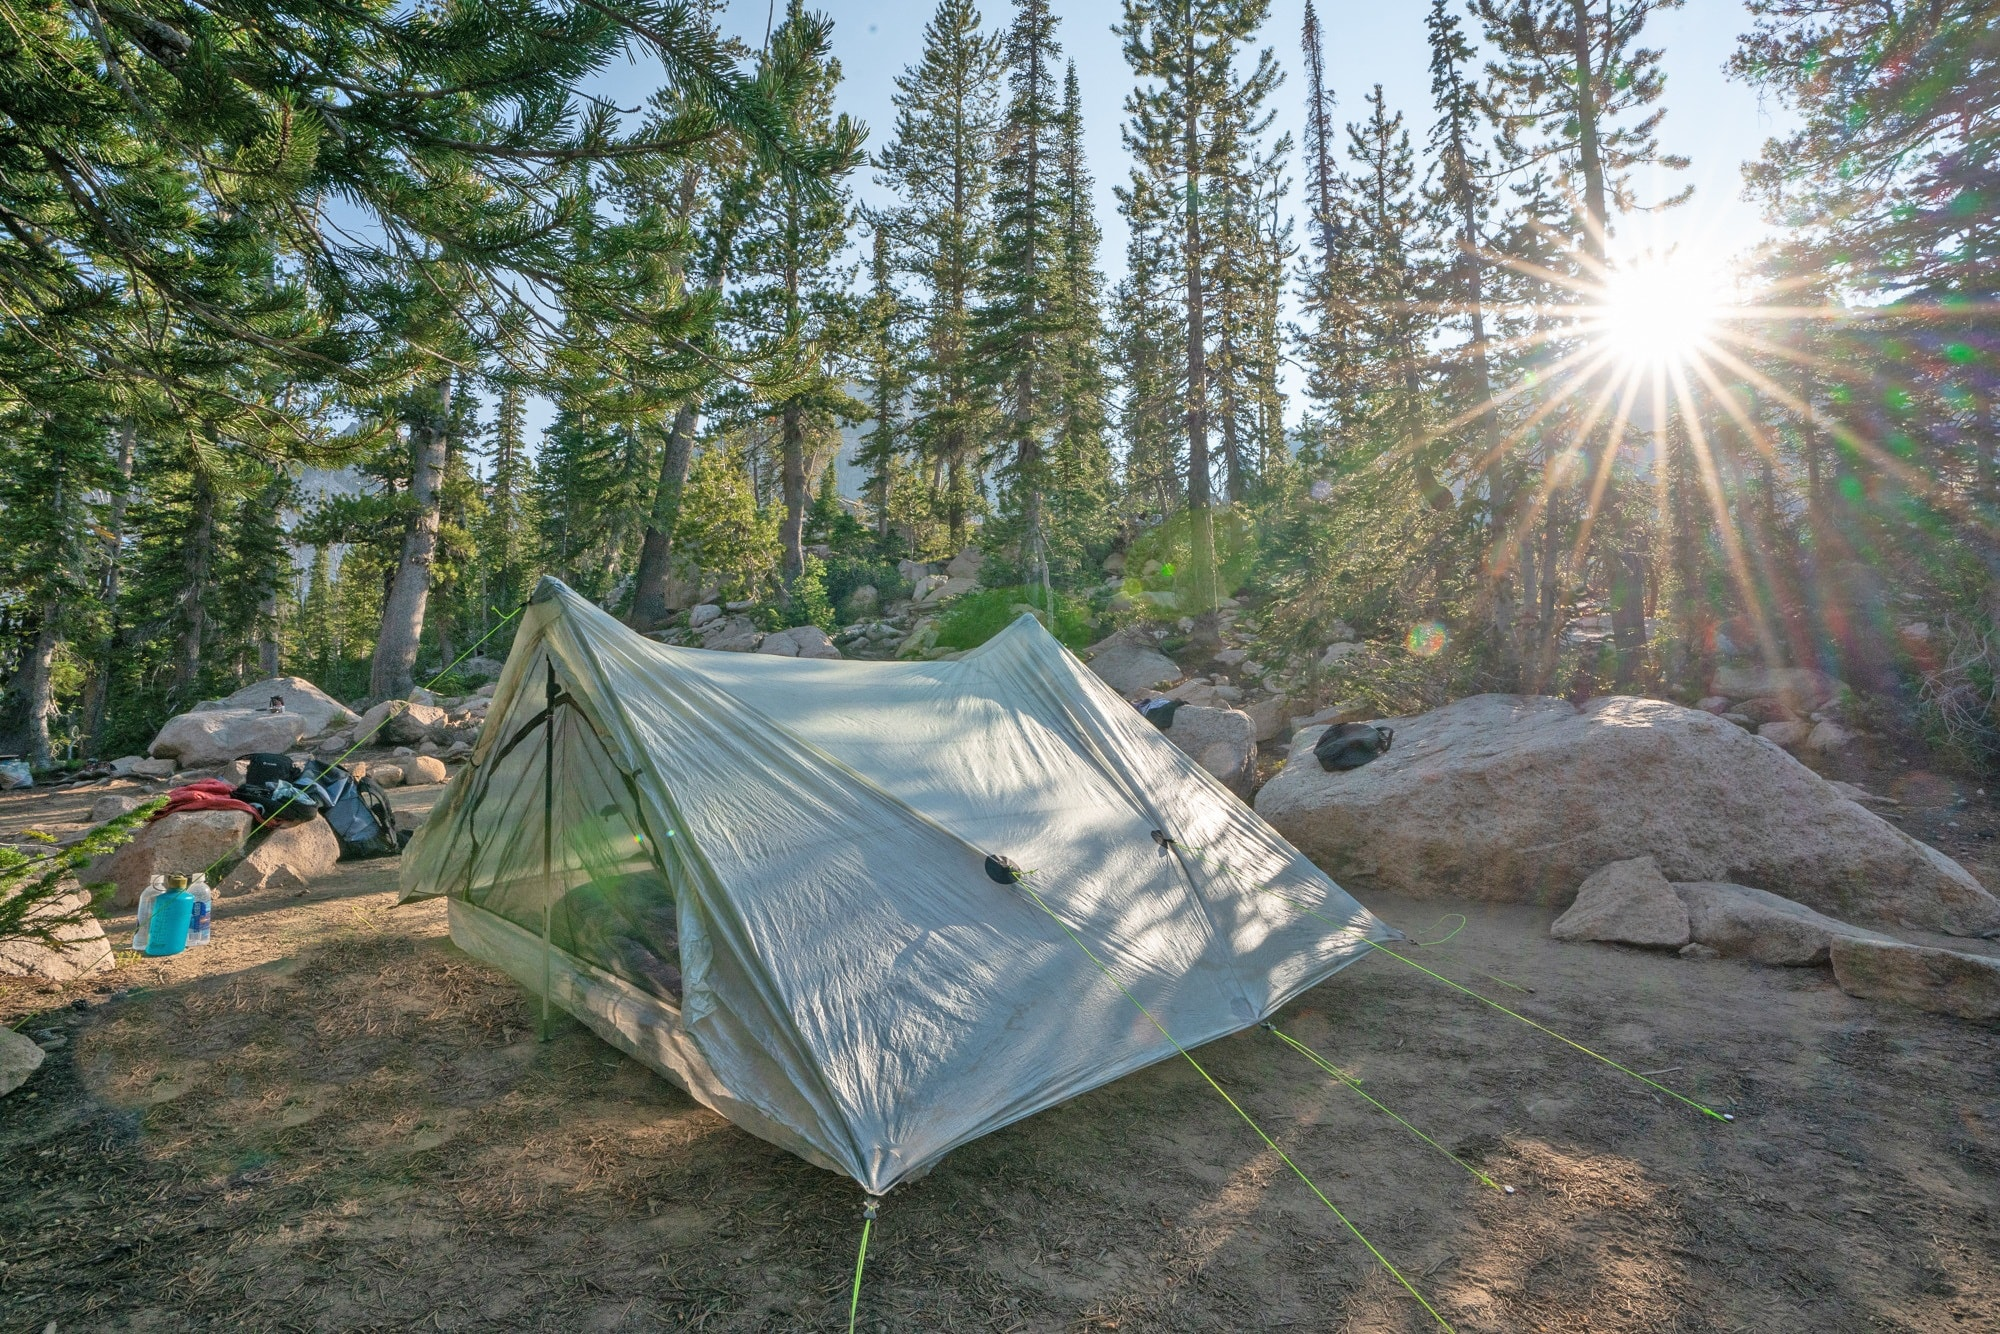 Tent Maintenance and Cleaning Tips to Extend The Life Of Your Tent